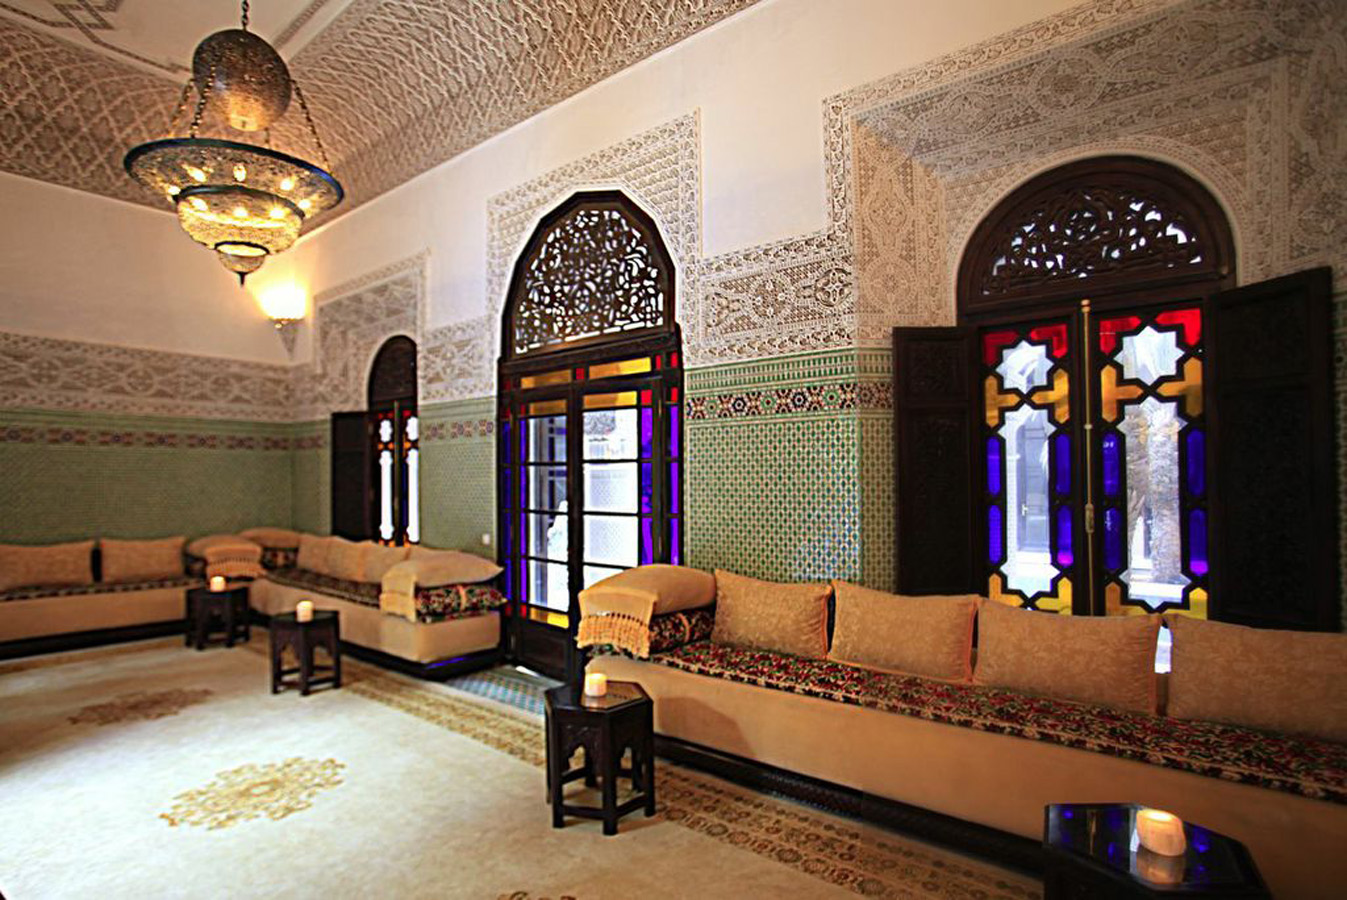 gastronomic restaurant fez moroccan restaurant fez medina. Black Bedroom Furniture Sets. Home Design Ideas